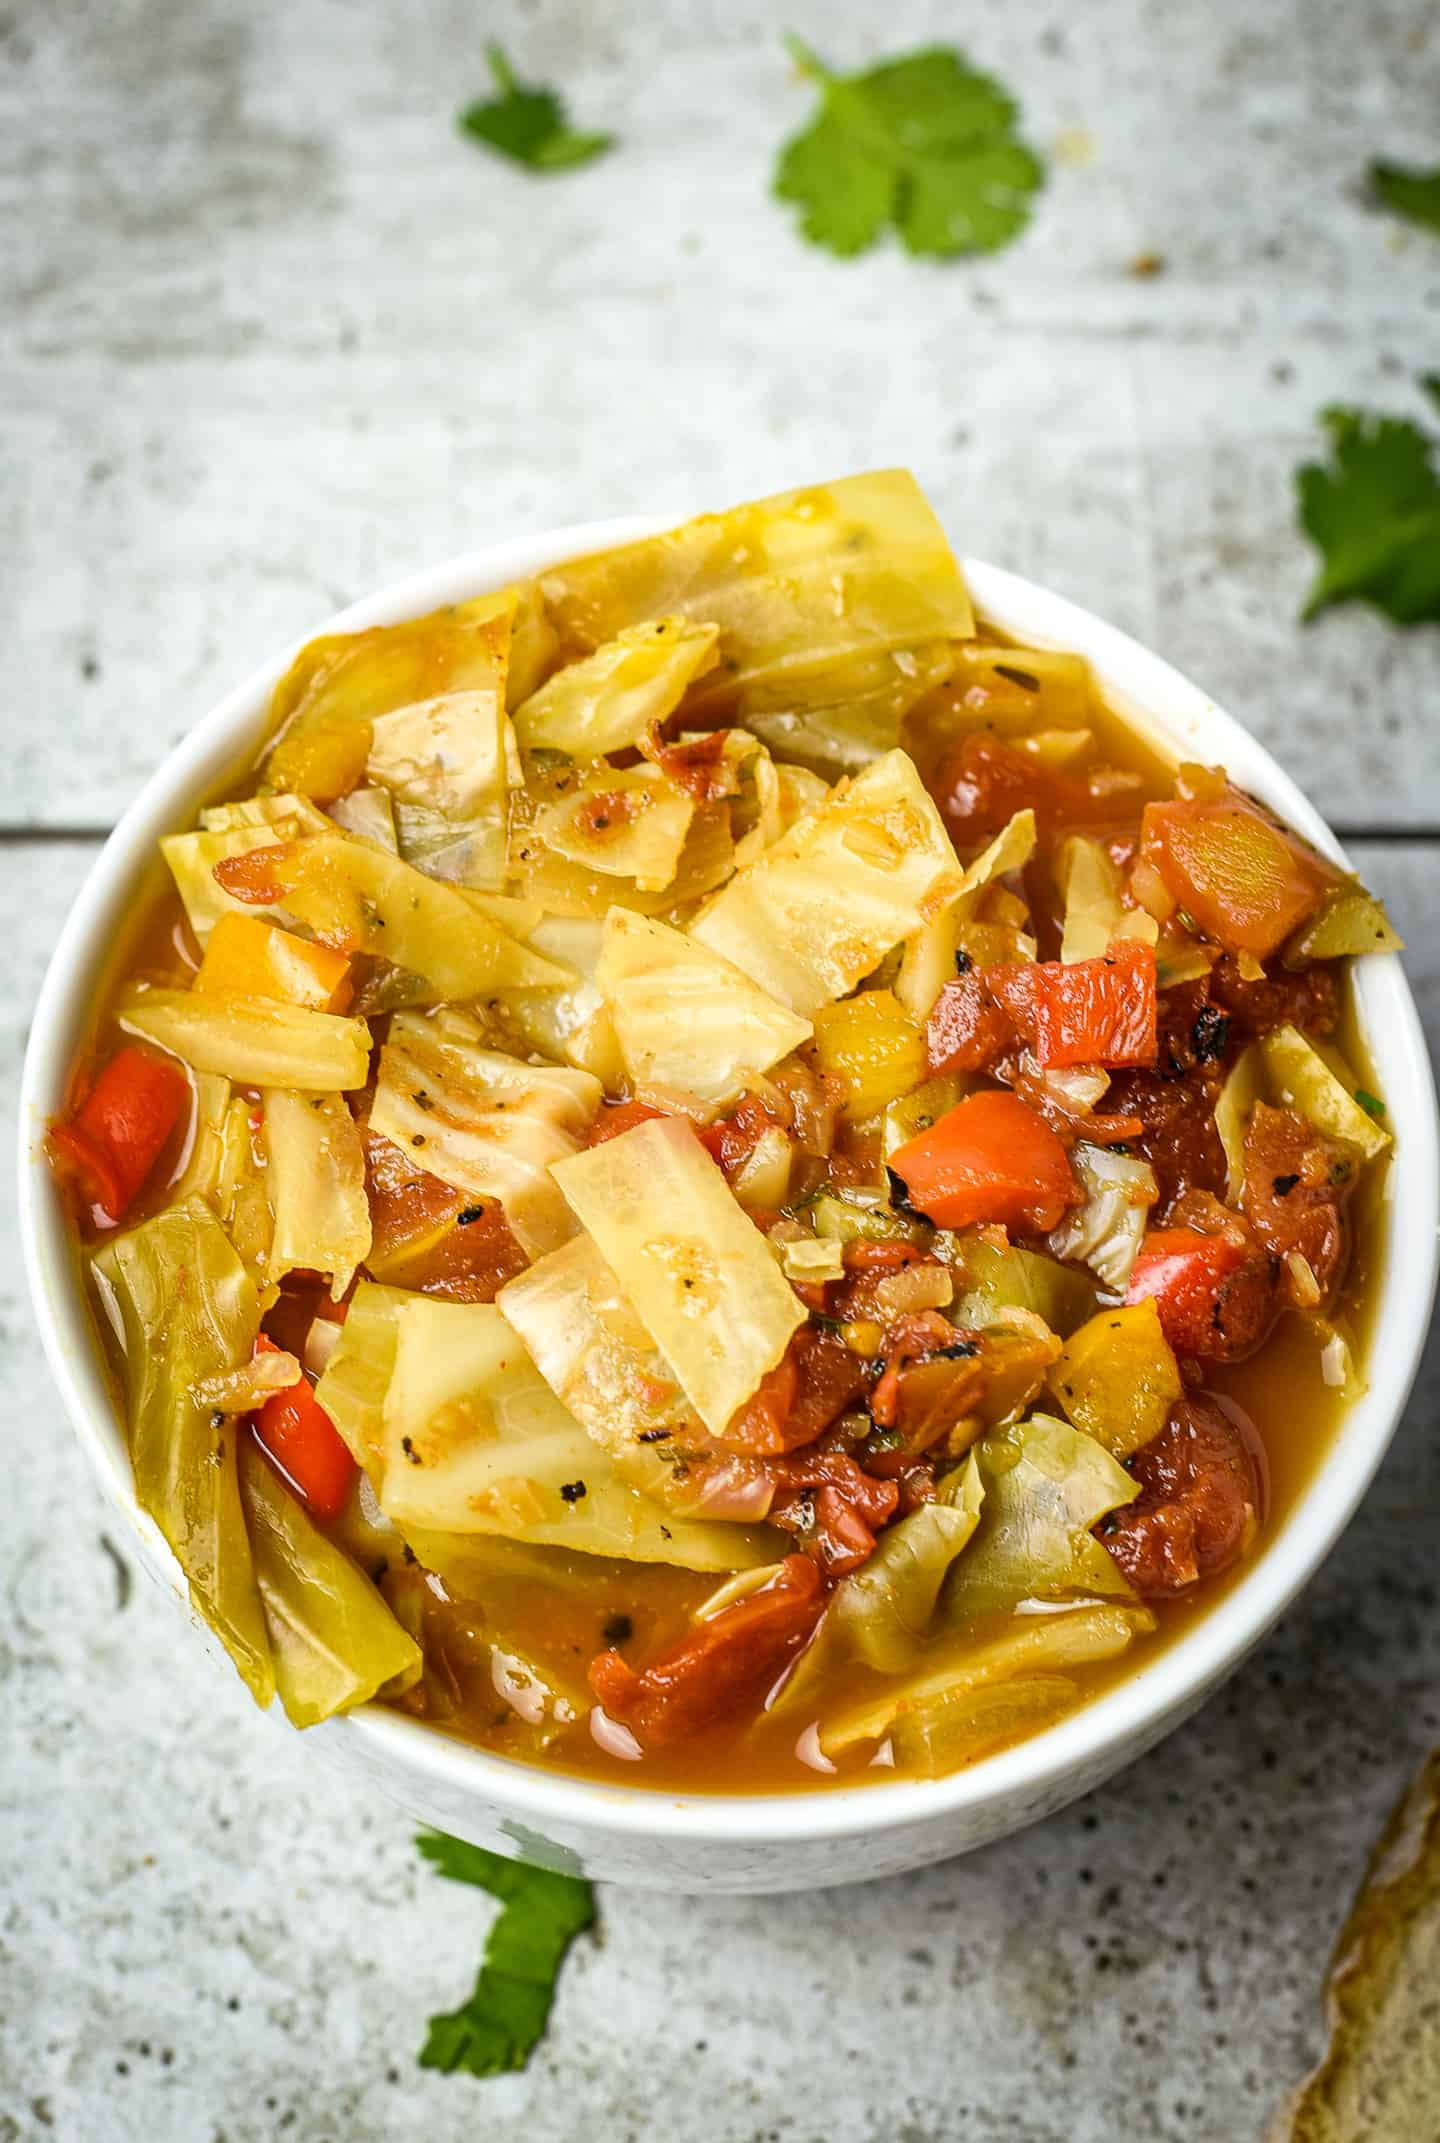 Vegetable soup with cabbage in bowl.